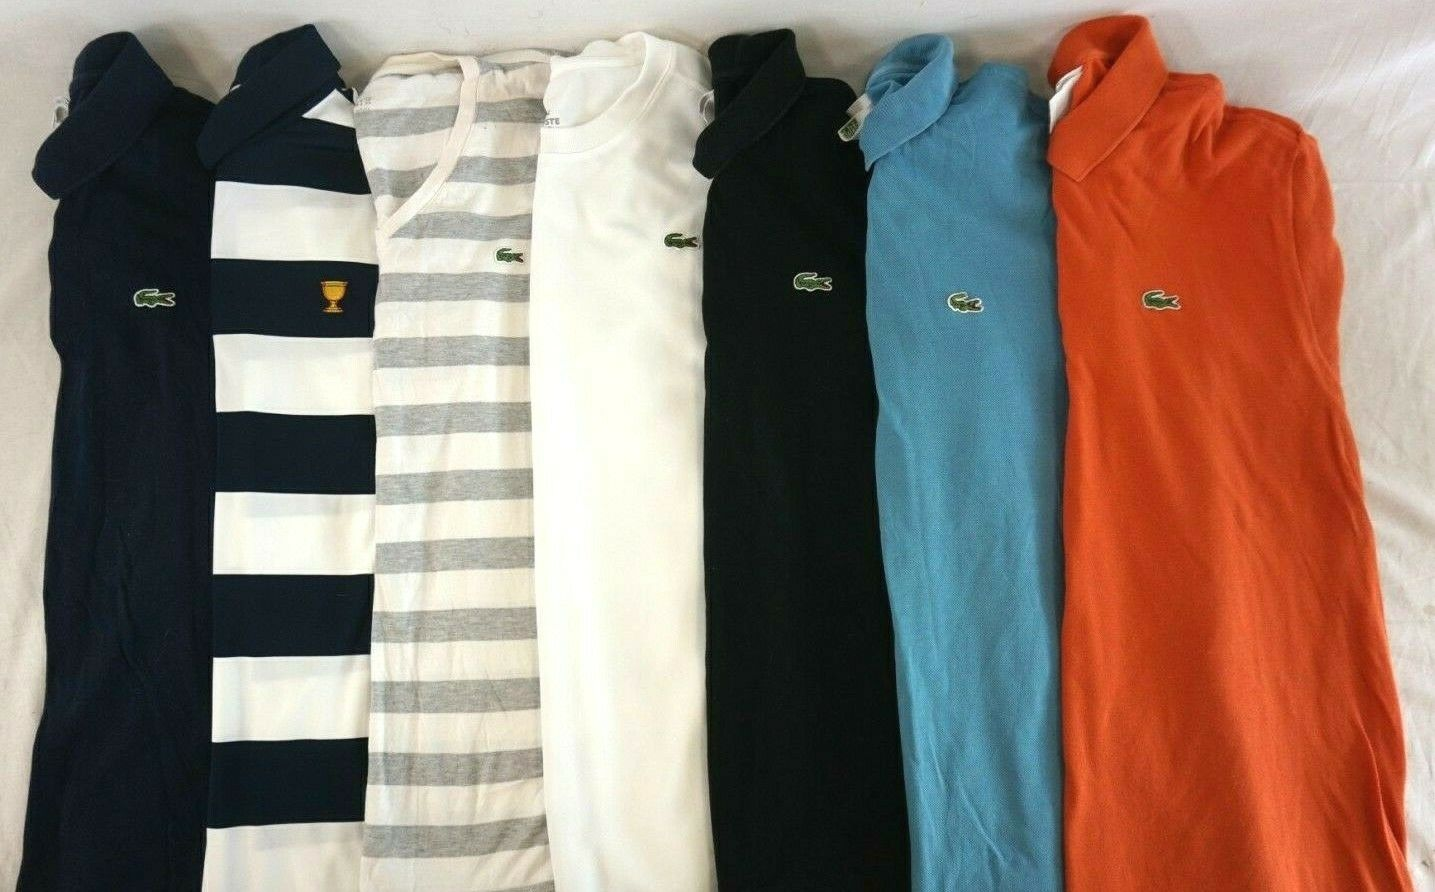 LACOSTE Lot Of 7 Men's Short Sleeve Polo Shirts